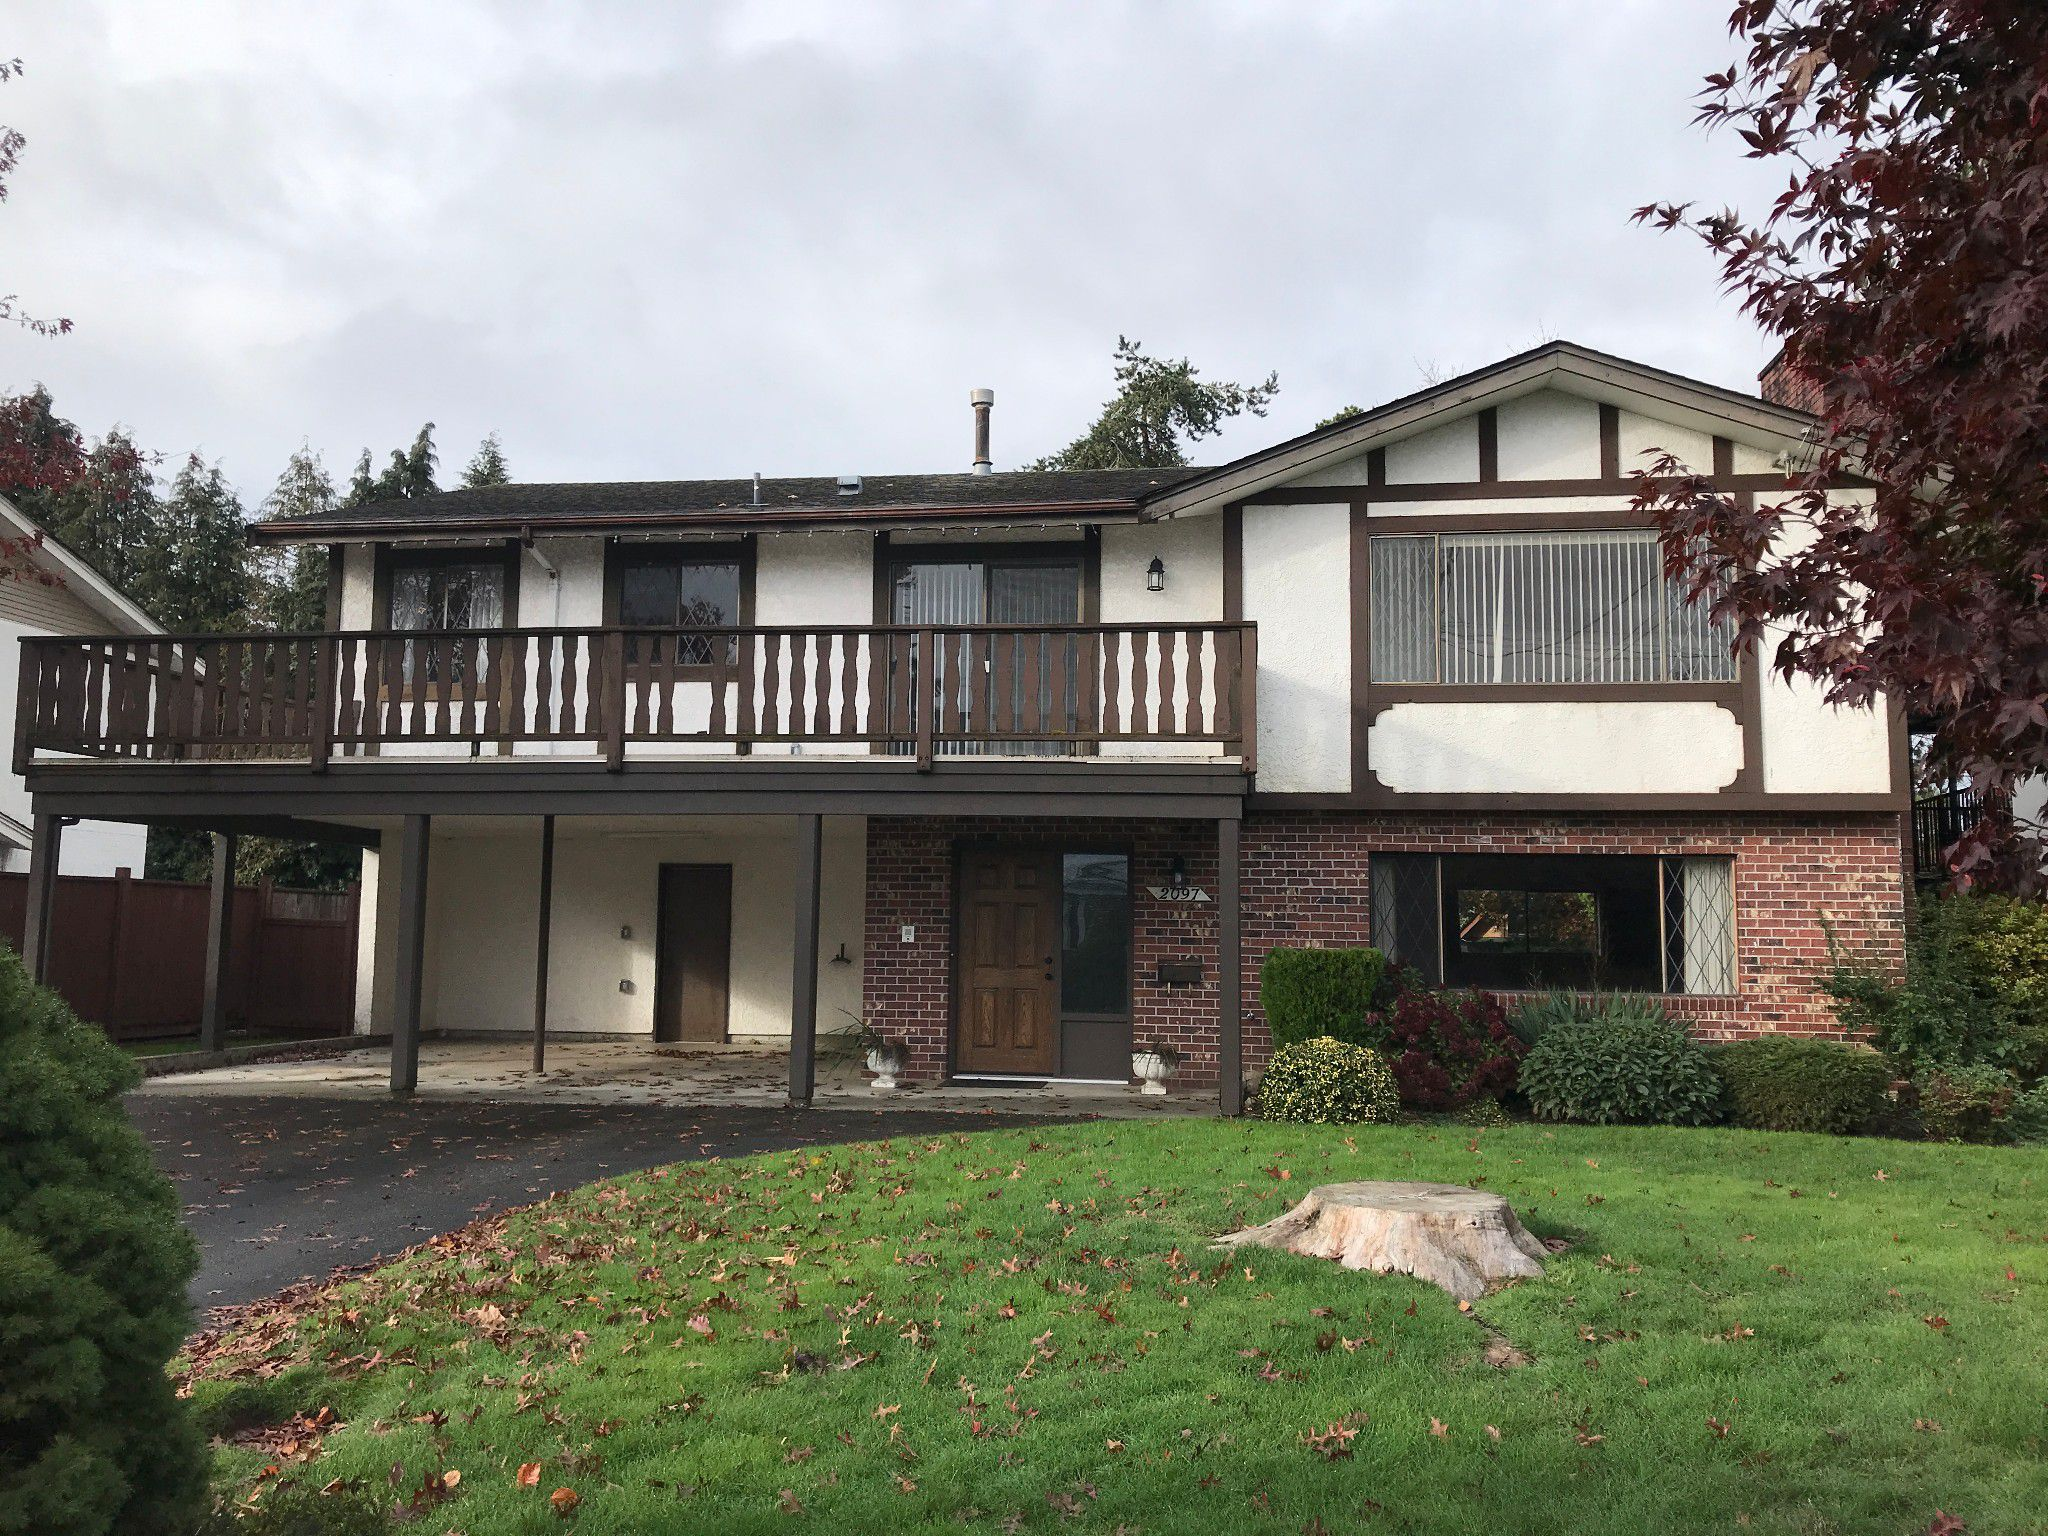 Main Photo: 2097 Lonsdale Cr. in Abbotsford: Central Abbotsford House for rent